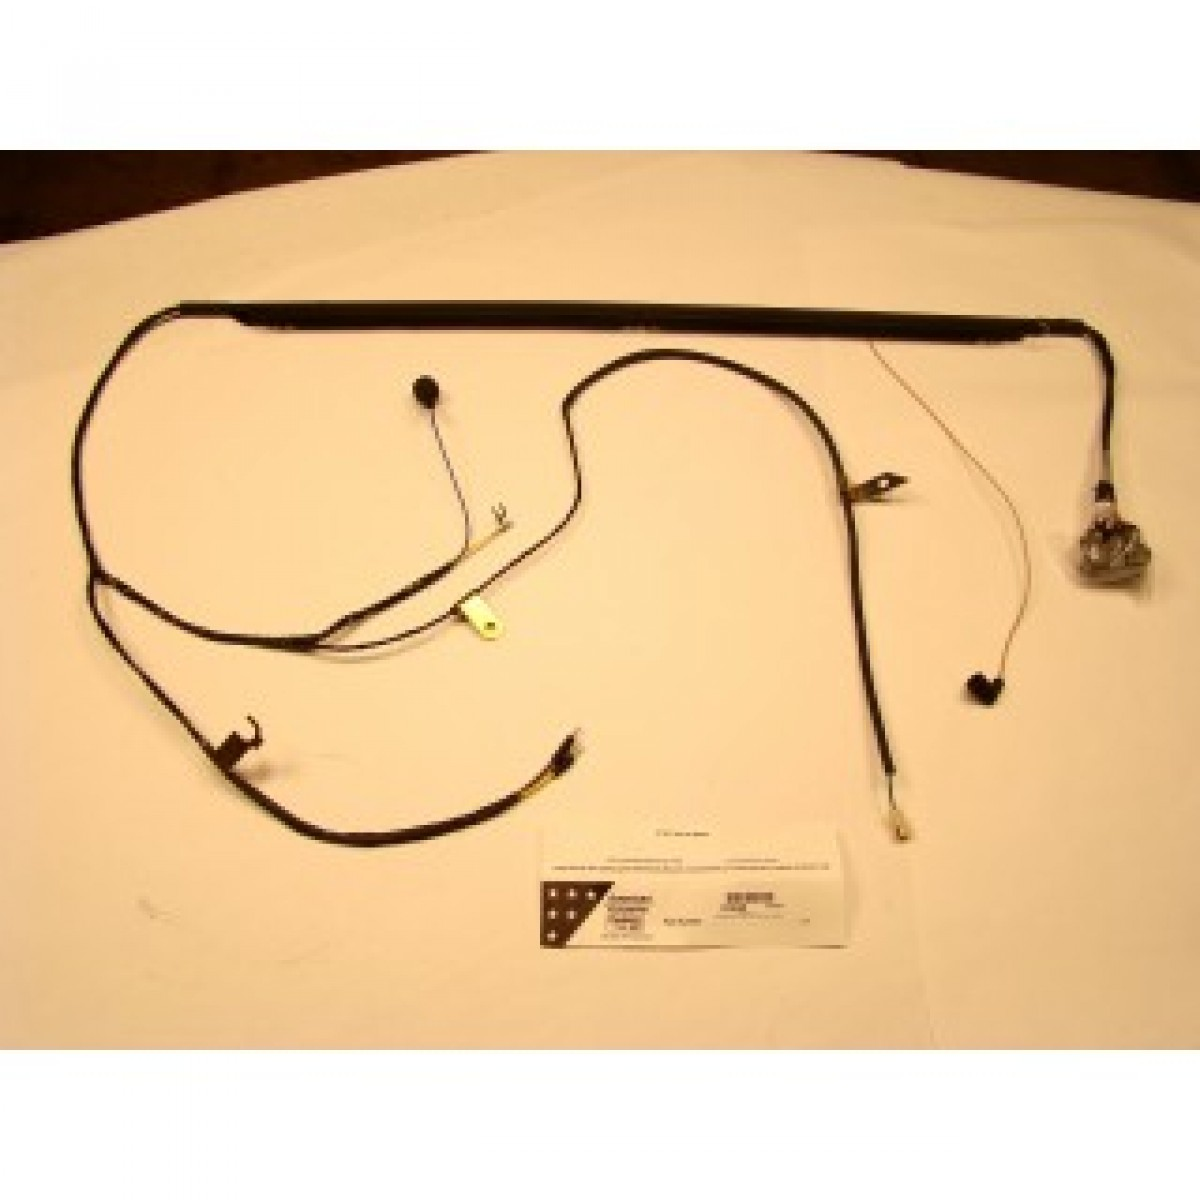 1970 C10 Engine Wiring Harness Car Diagrams Explained 73 Charger Diagram 1972 V8 Rh Code510 Com 1984 Chevy Truck